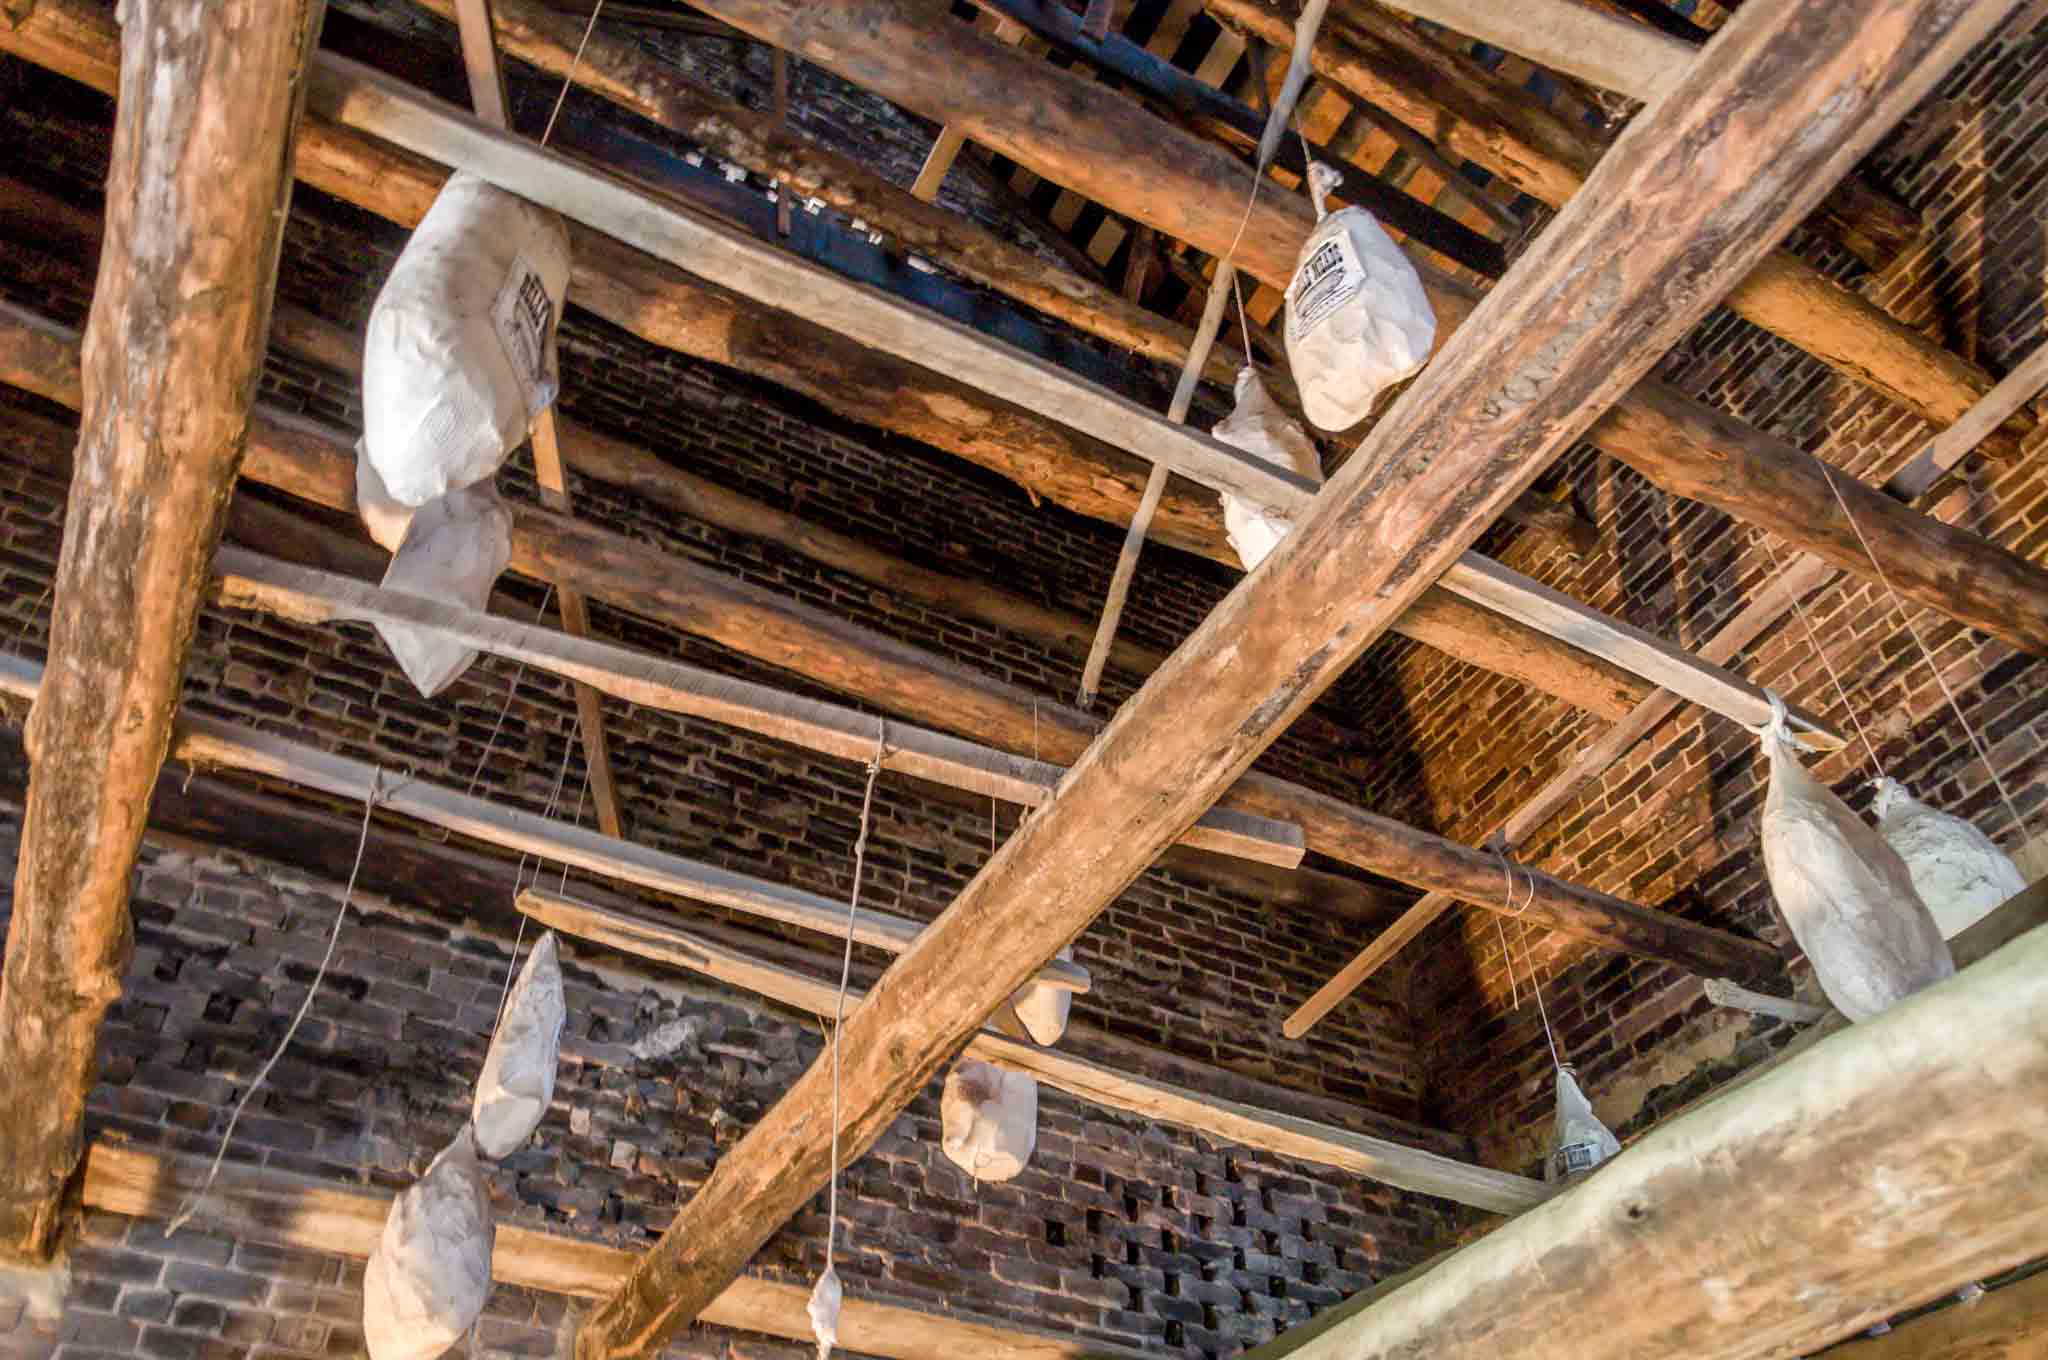 Pork curing in the smokehouse rafters